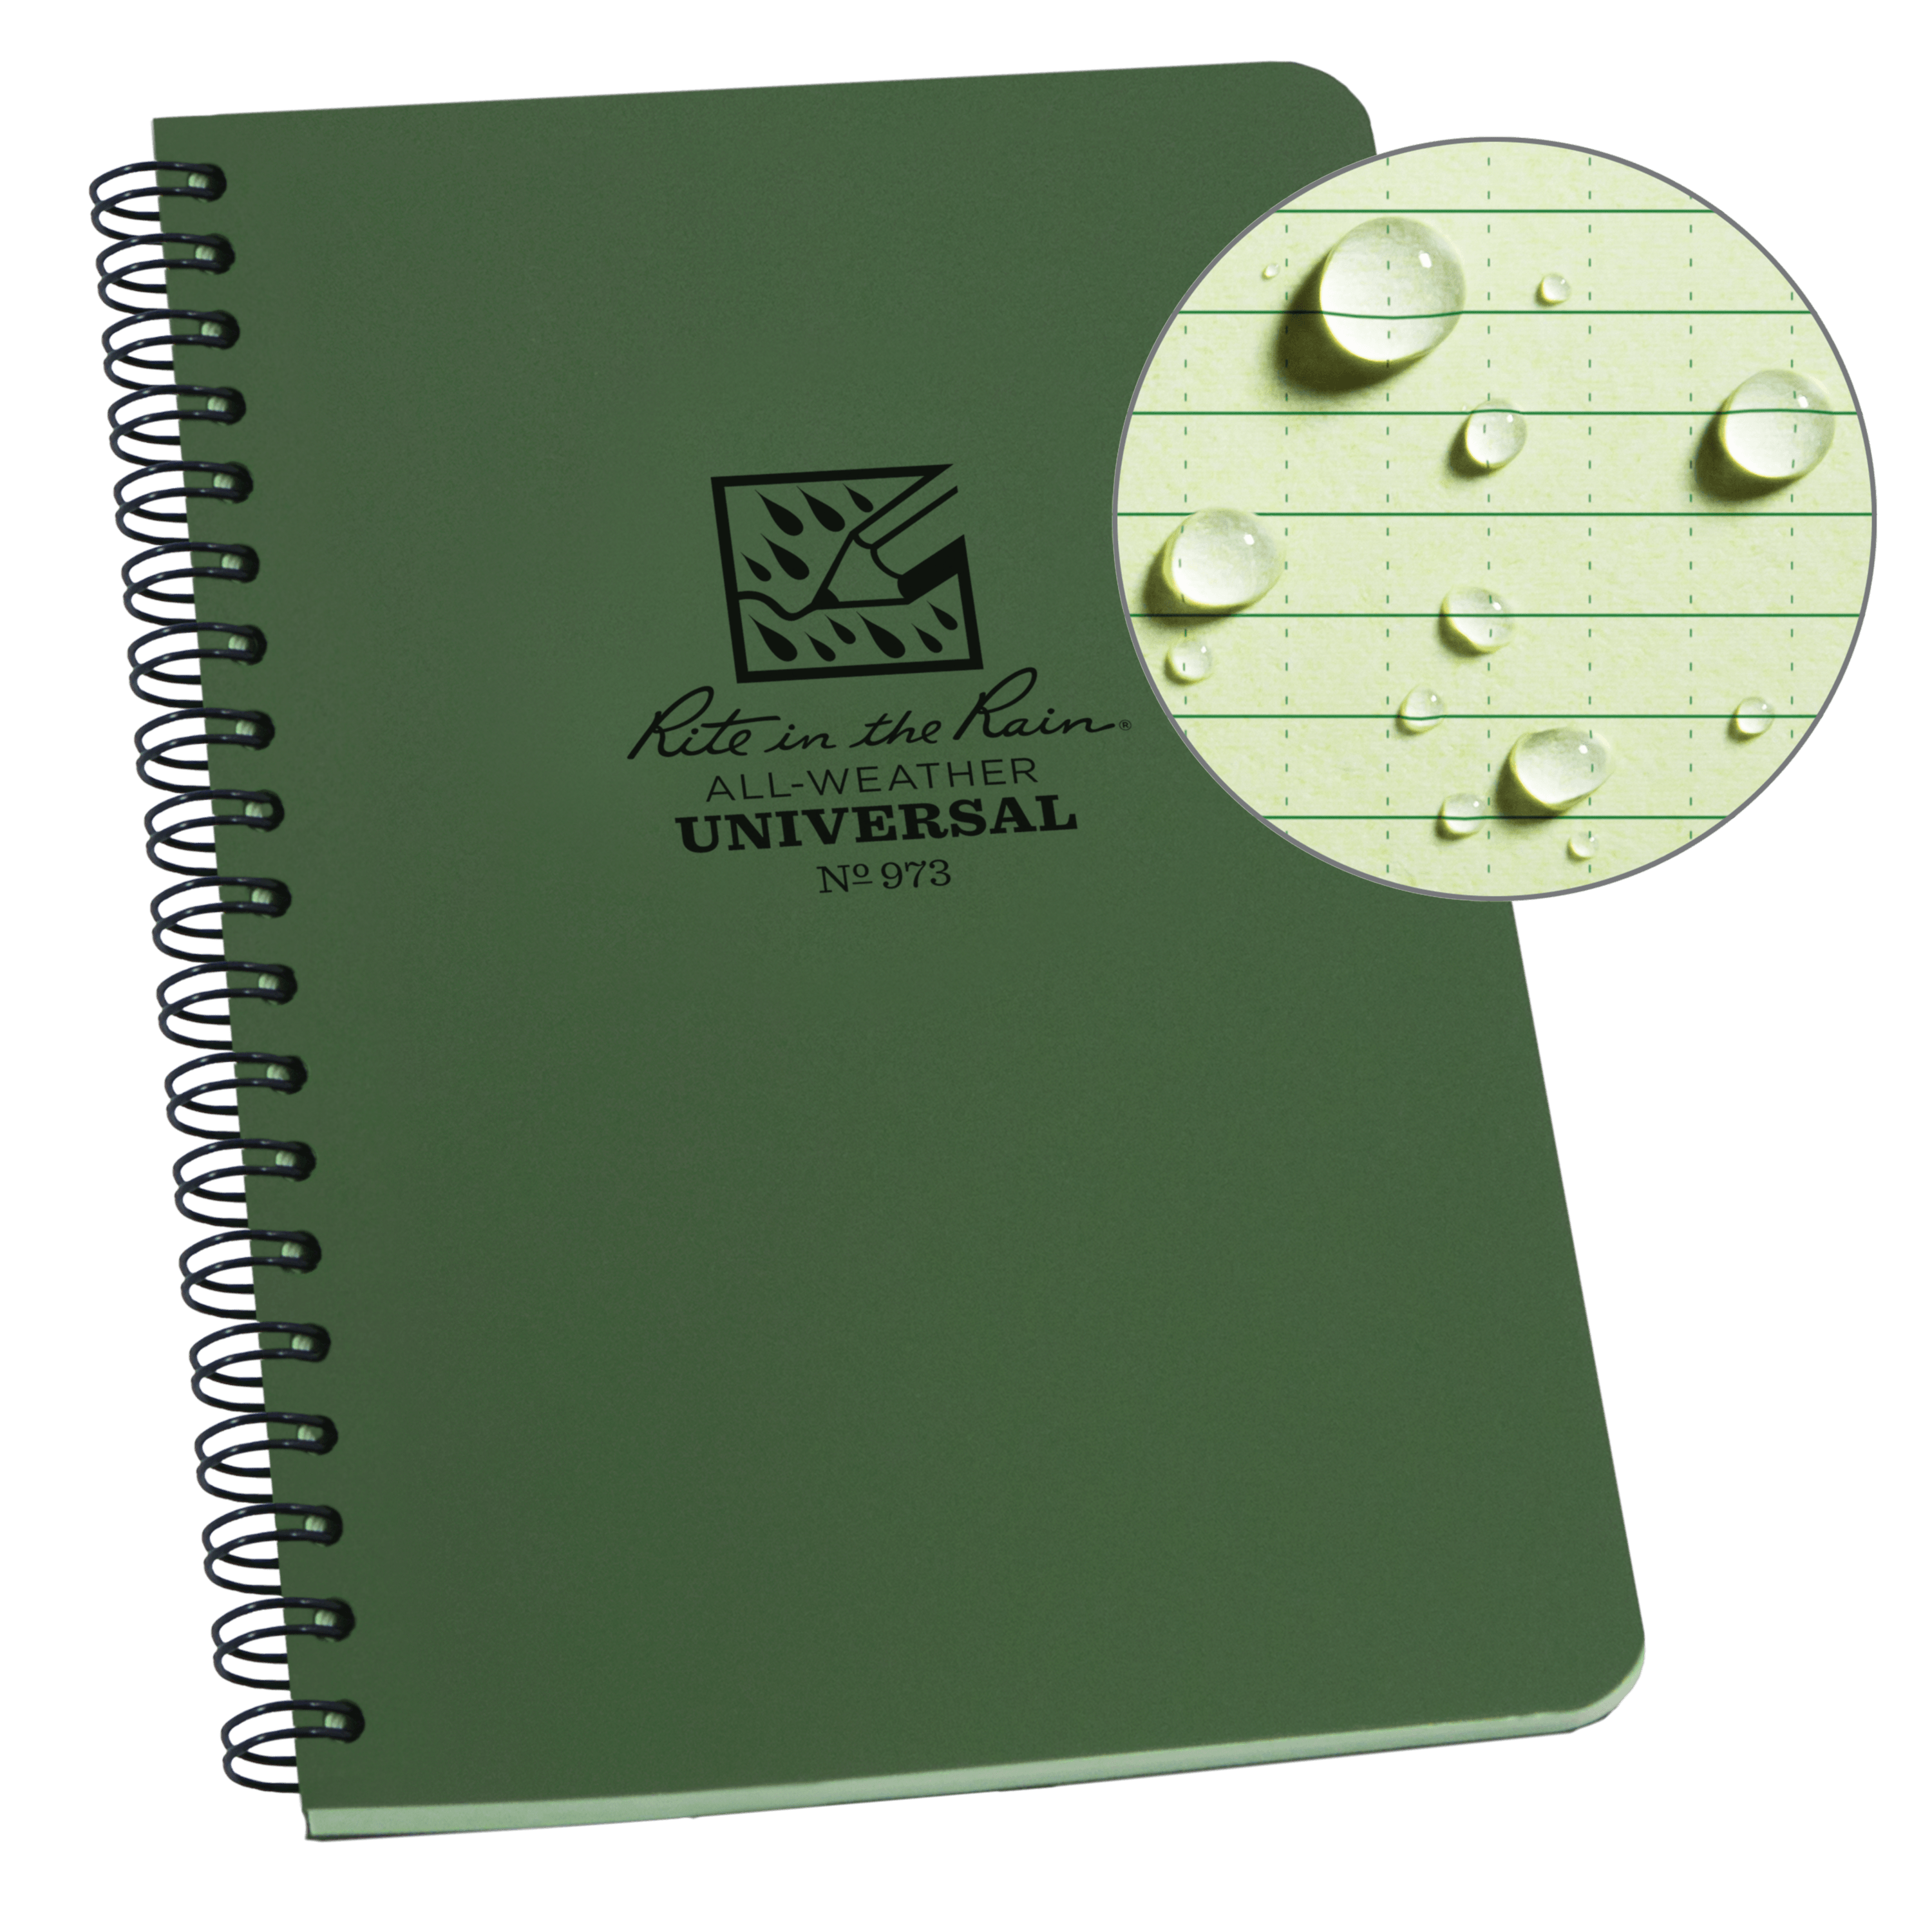 "Rite in the Rain All-Weather Side-Spiral Notebook, 4 5/8"" x 7"", Green Cover, Universal Pattern (No. 973)"